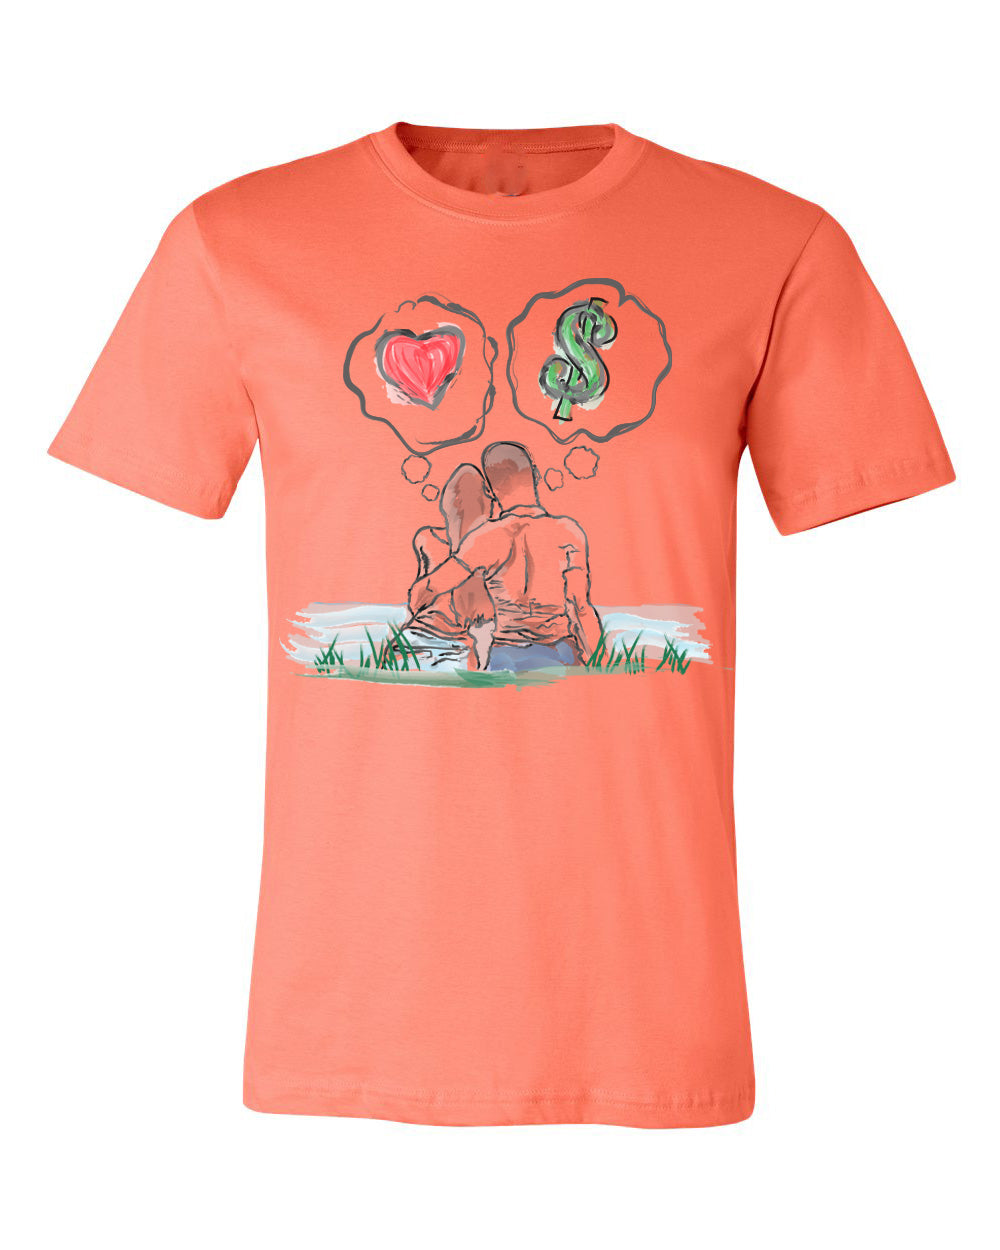 Guy Benson Collection Love Vs Money T-Shirt -Coral